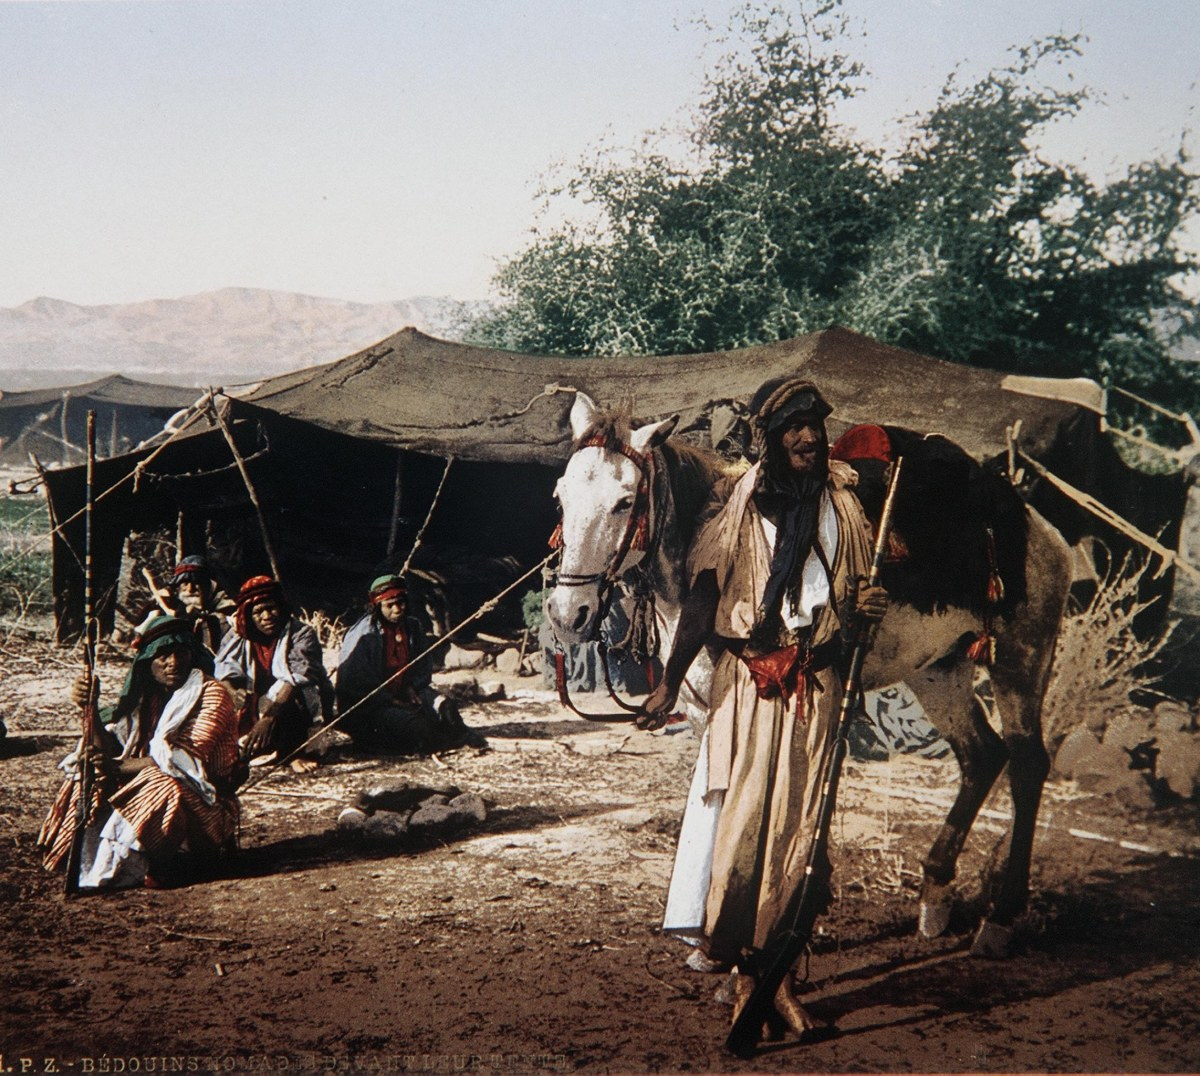 Late 19th Century Bedouins.